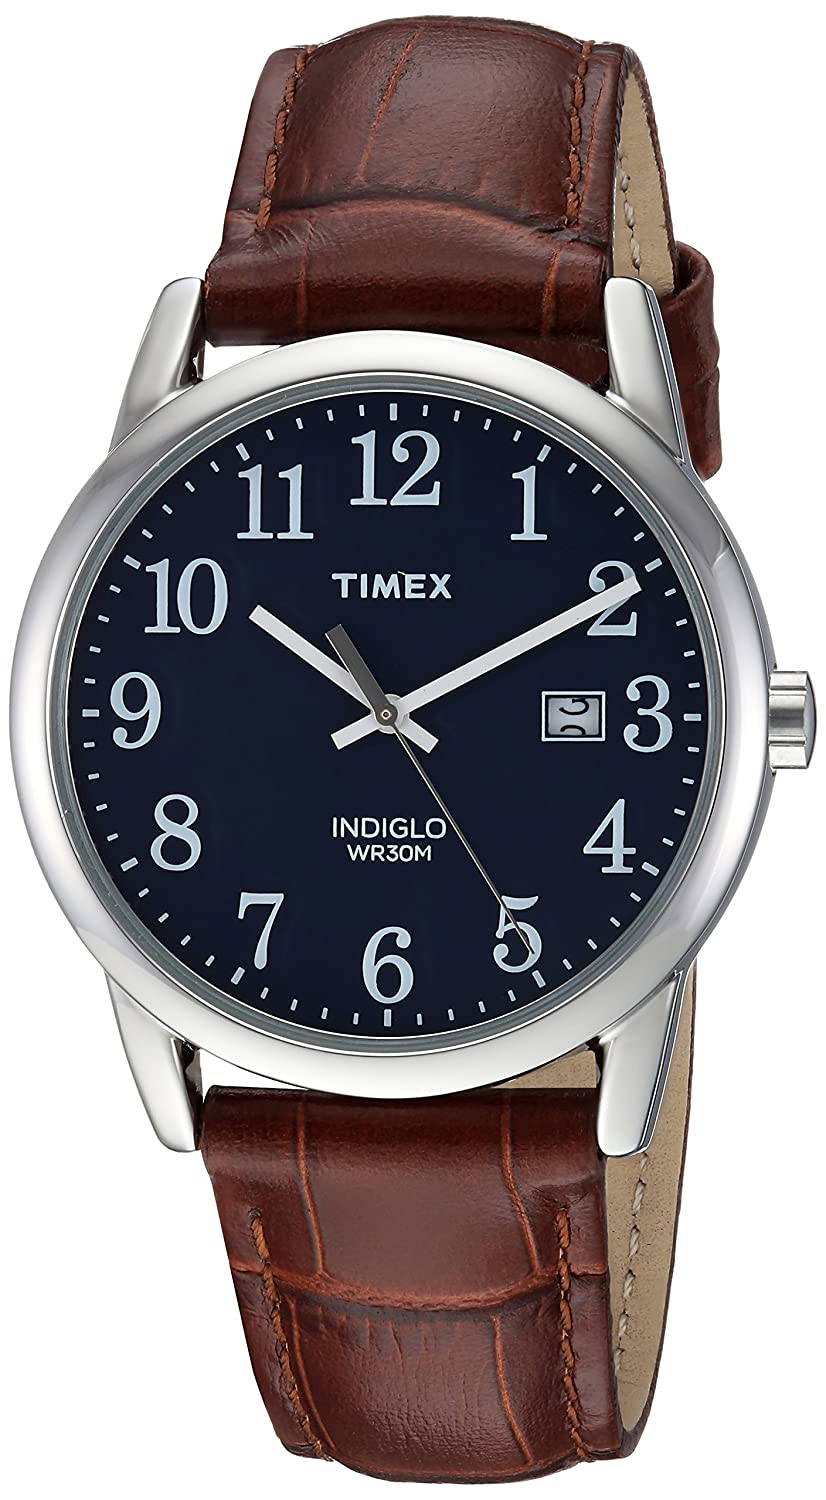 3881c4265 Amazon.com: Timex Men's TW2R63800 Easy Reader Brown/Silver-Tone/Blue Croco  Pattern Leather Strap Watch: Watches